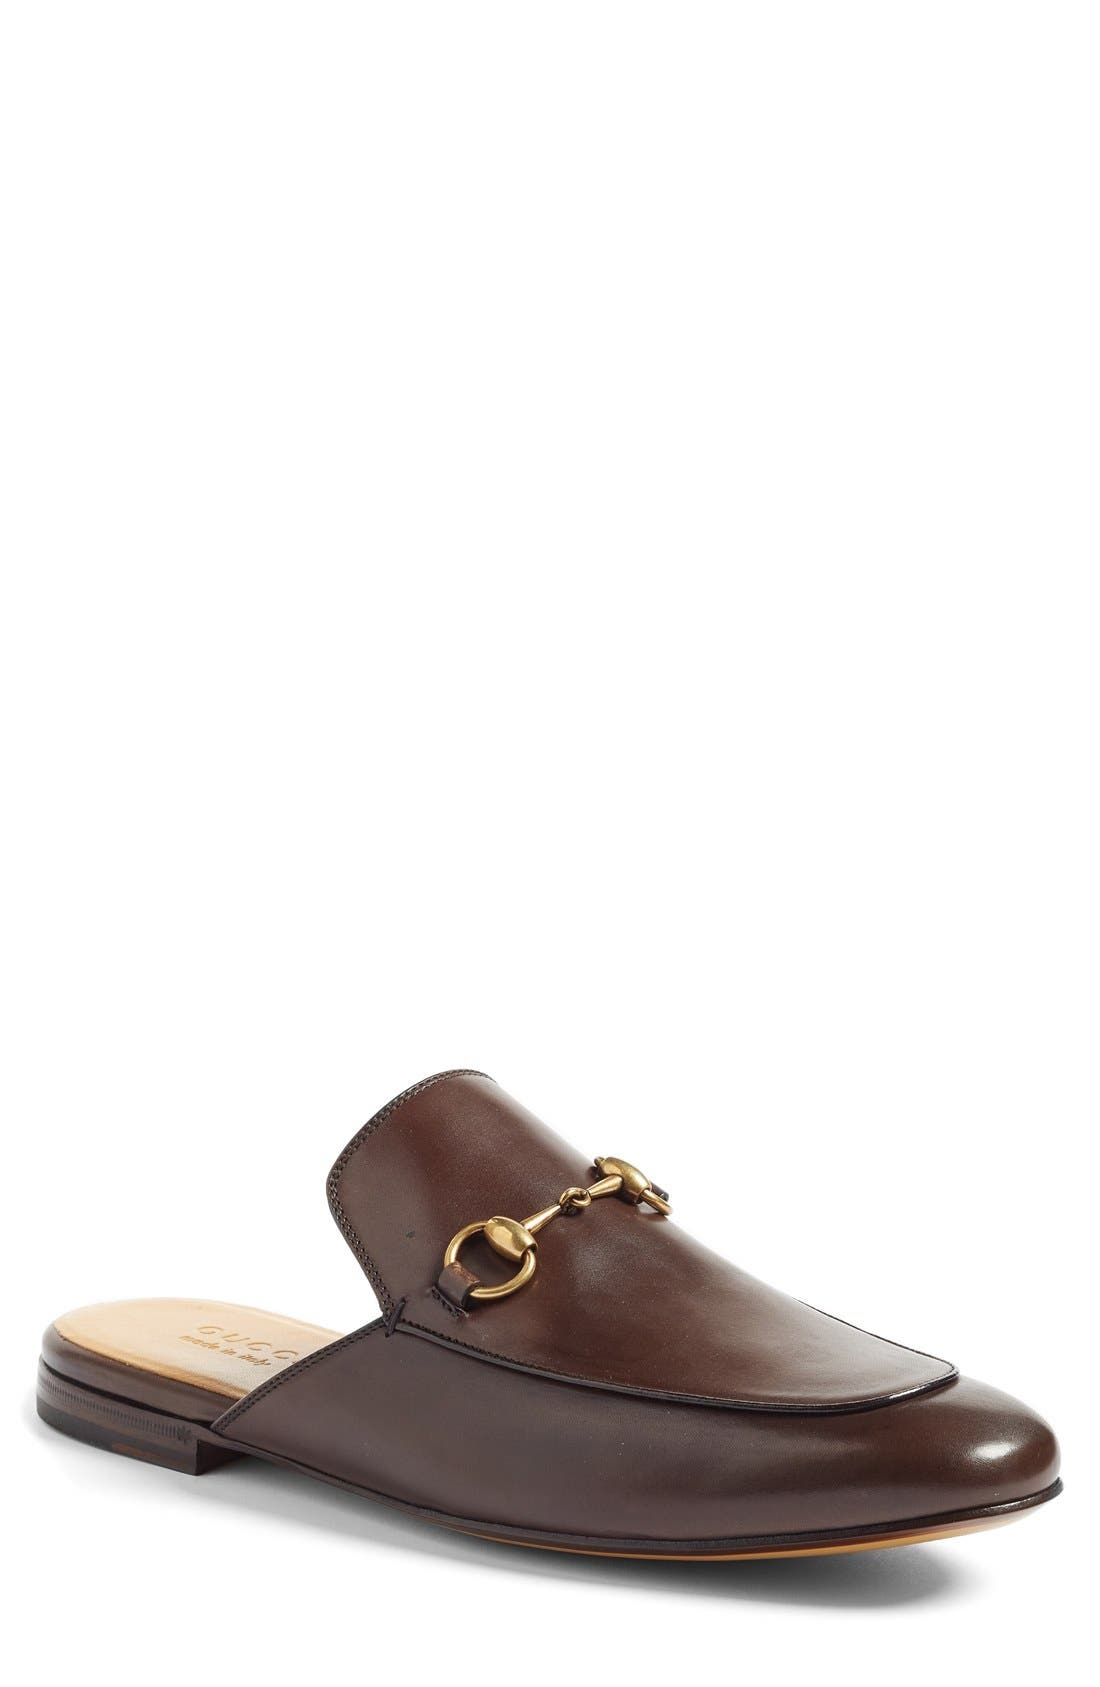 Straw Princetown Slipper,                             Main thumbnail 1, color,                             Brown Leather